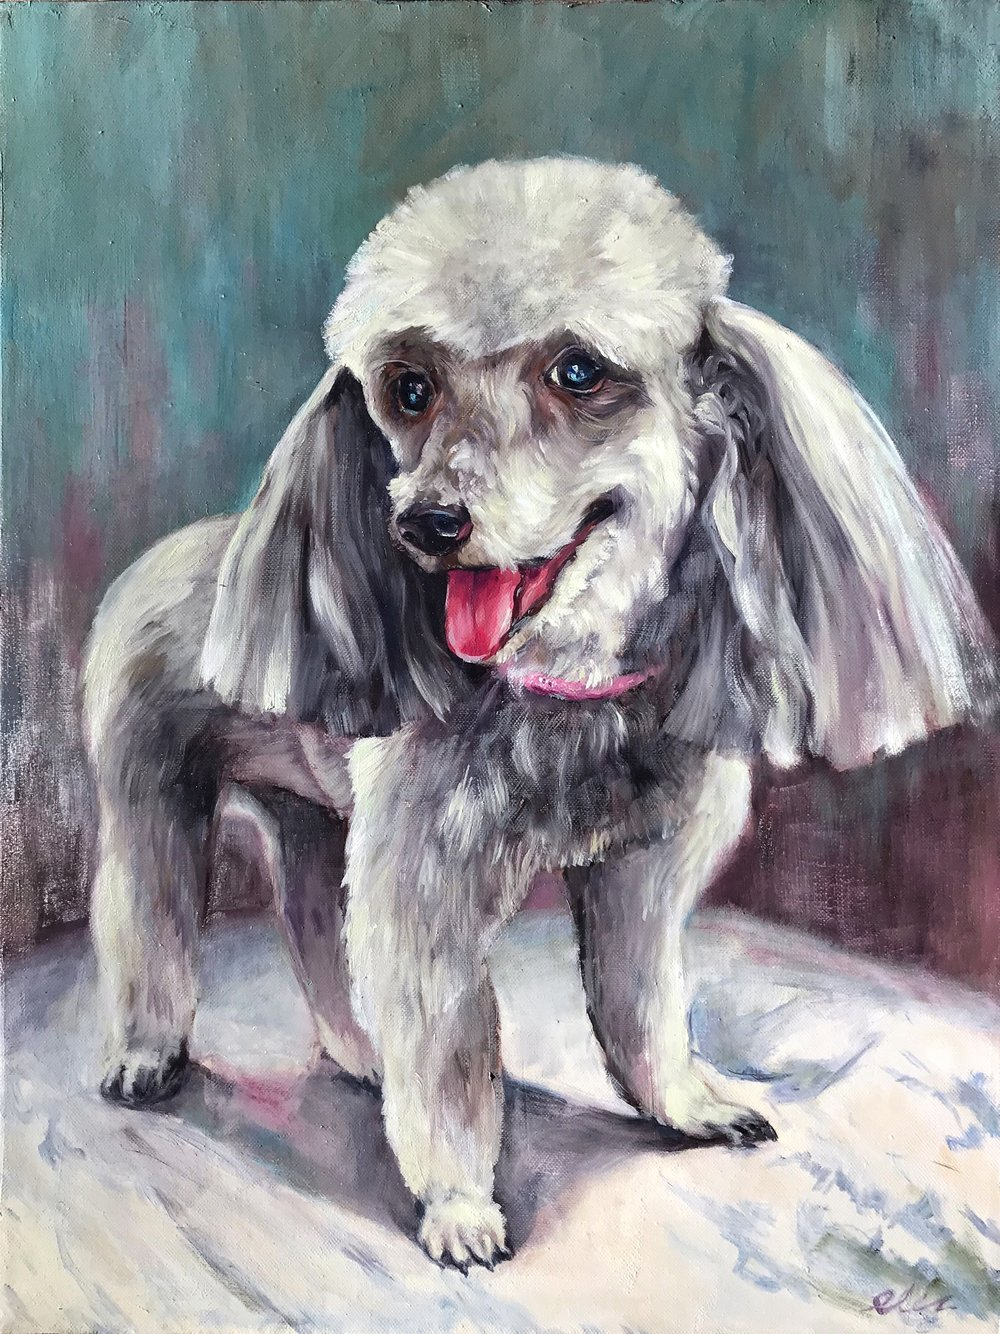 Pet Portrait; Original Oil Painting of the Sassy Poodle Shadow